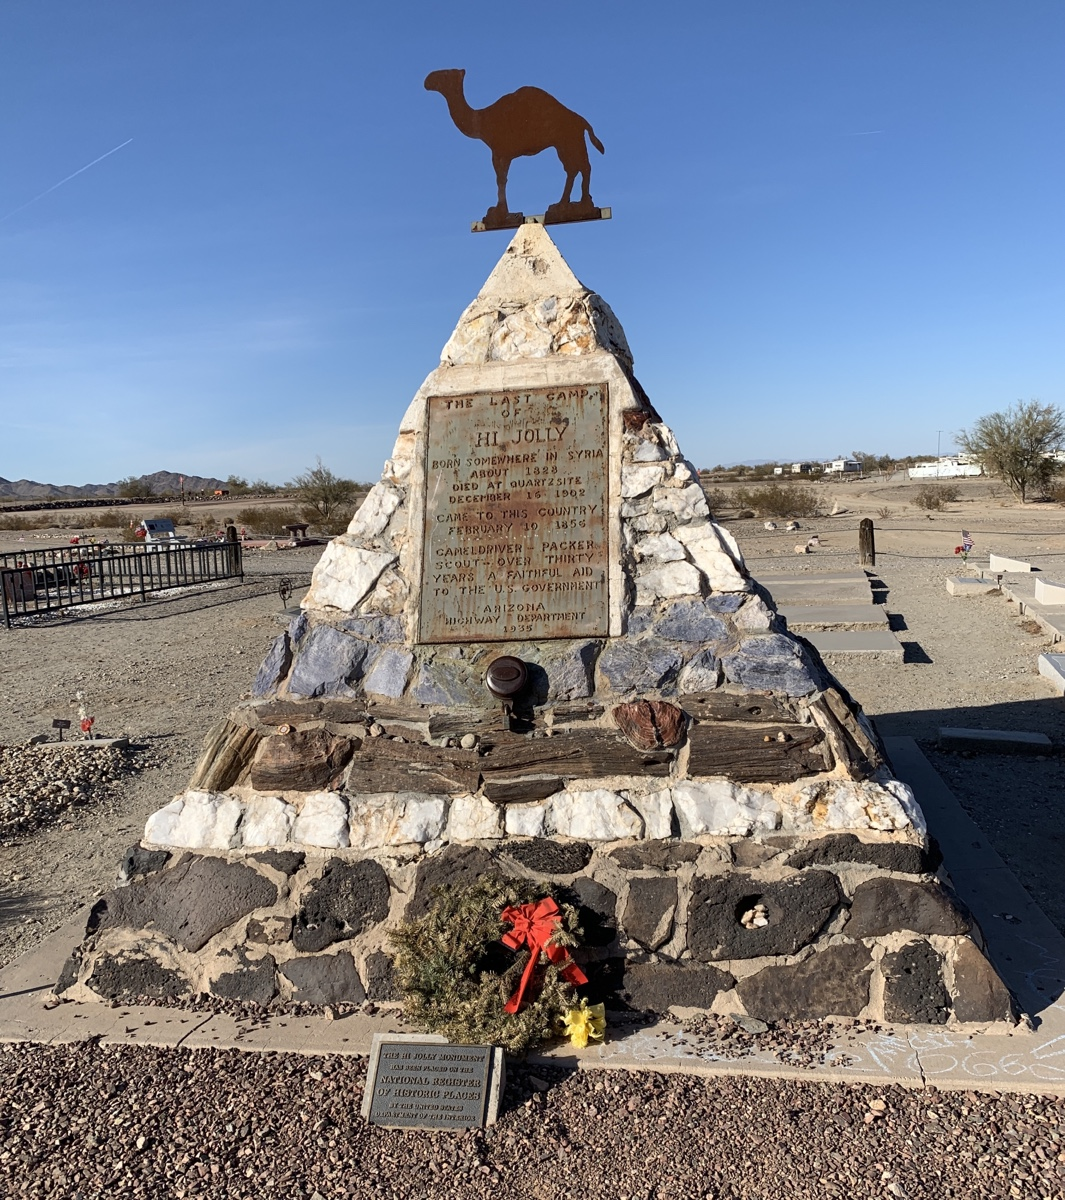 The Hi Jolly monument,  a stone pyramid with a metal camel on top and a plaque